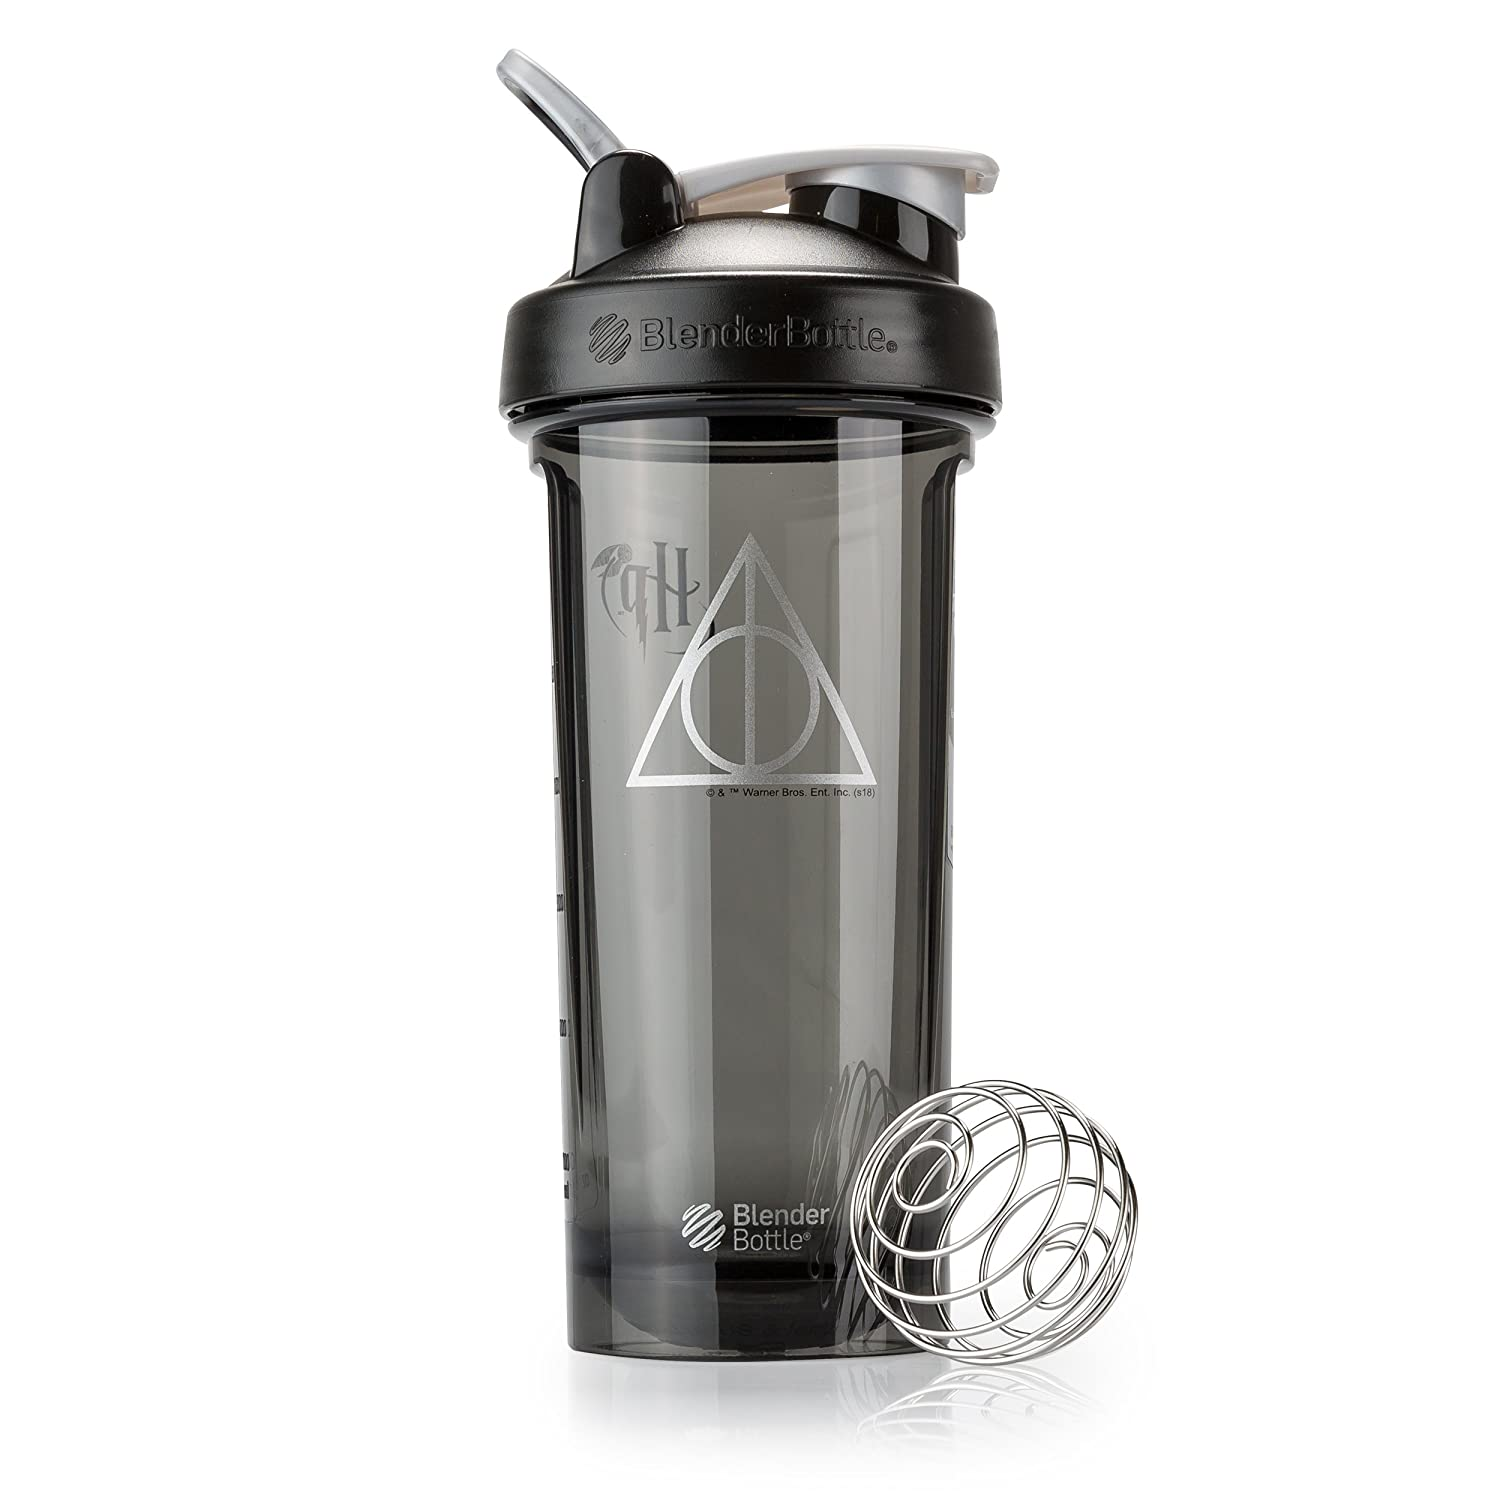 BlenderBottle Harry Potter Pro Series 28-Ounce Shaker Bottle, Deathly Hallows